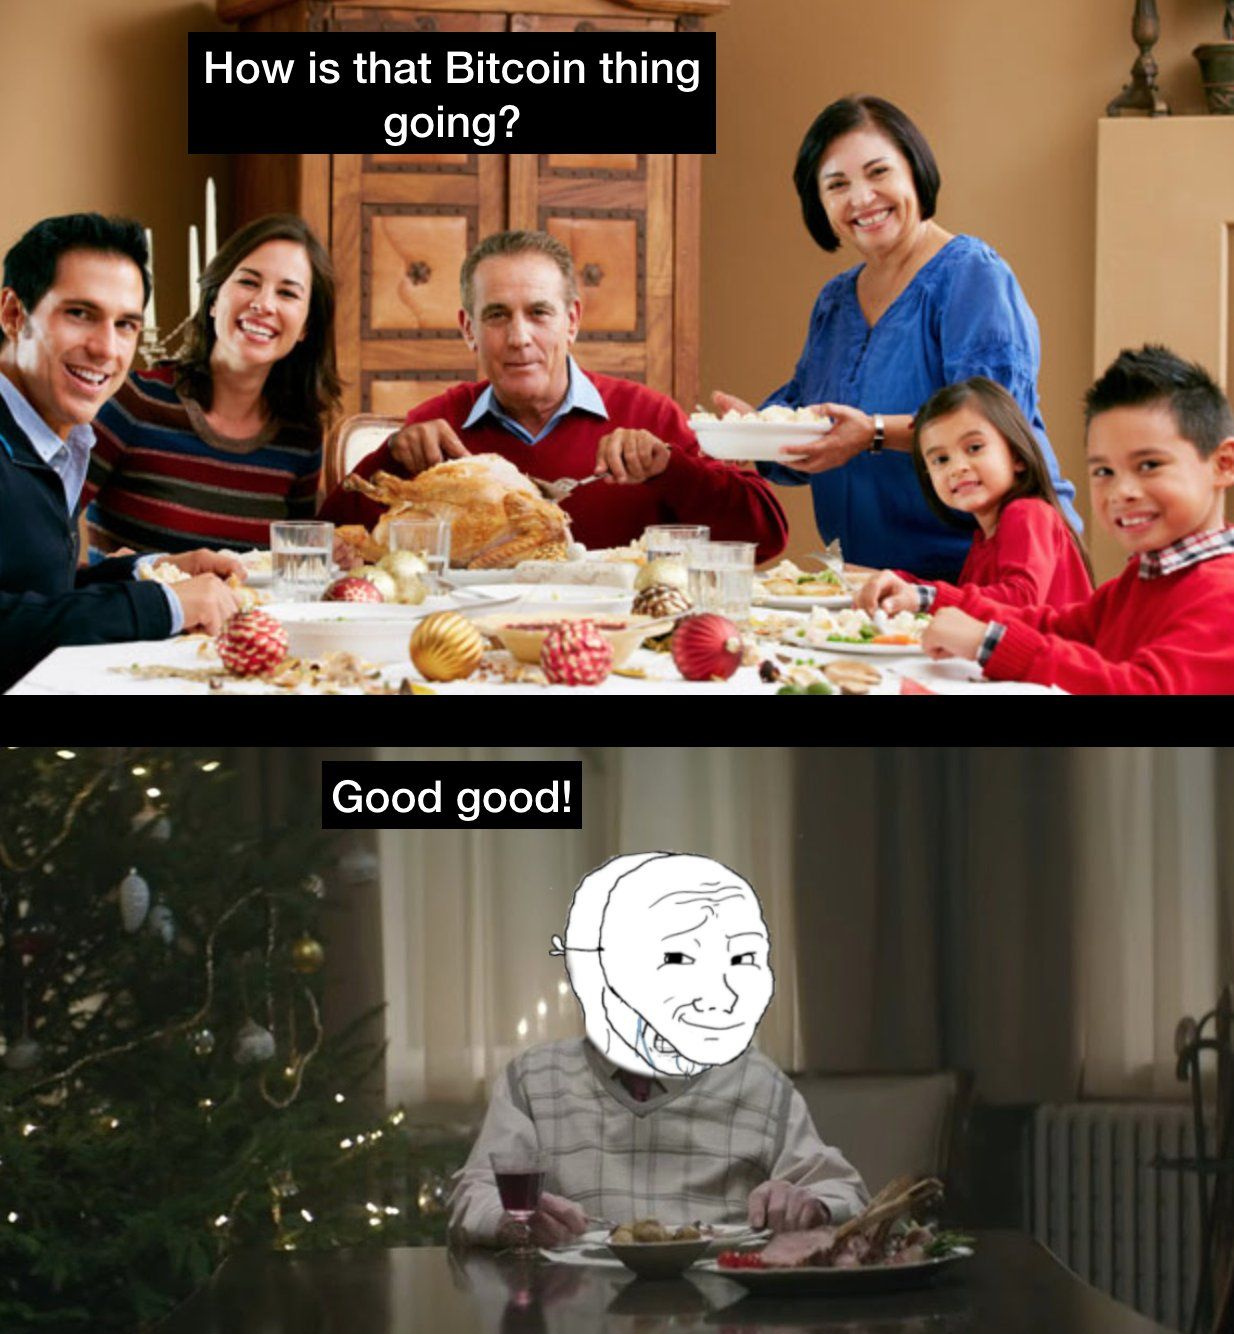 Happy Holidays! (With images) Bitcoin, Memes, Cryptocurrency